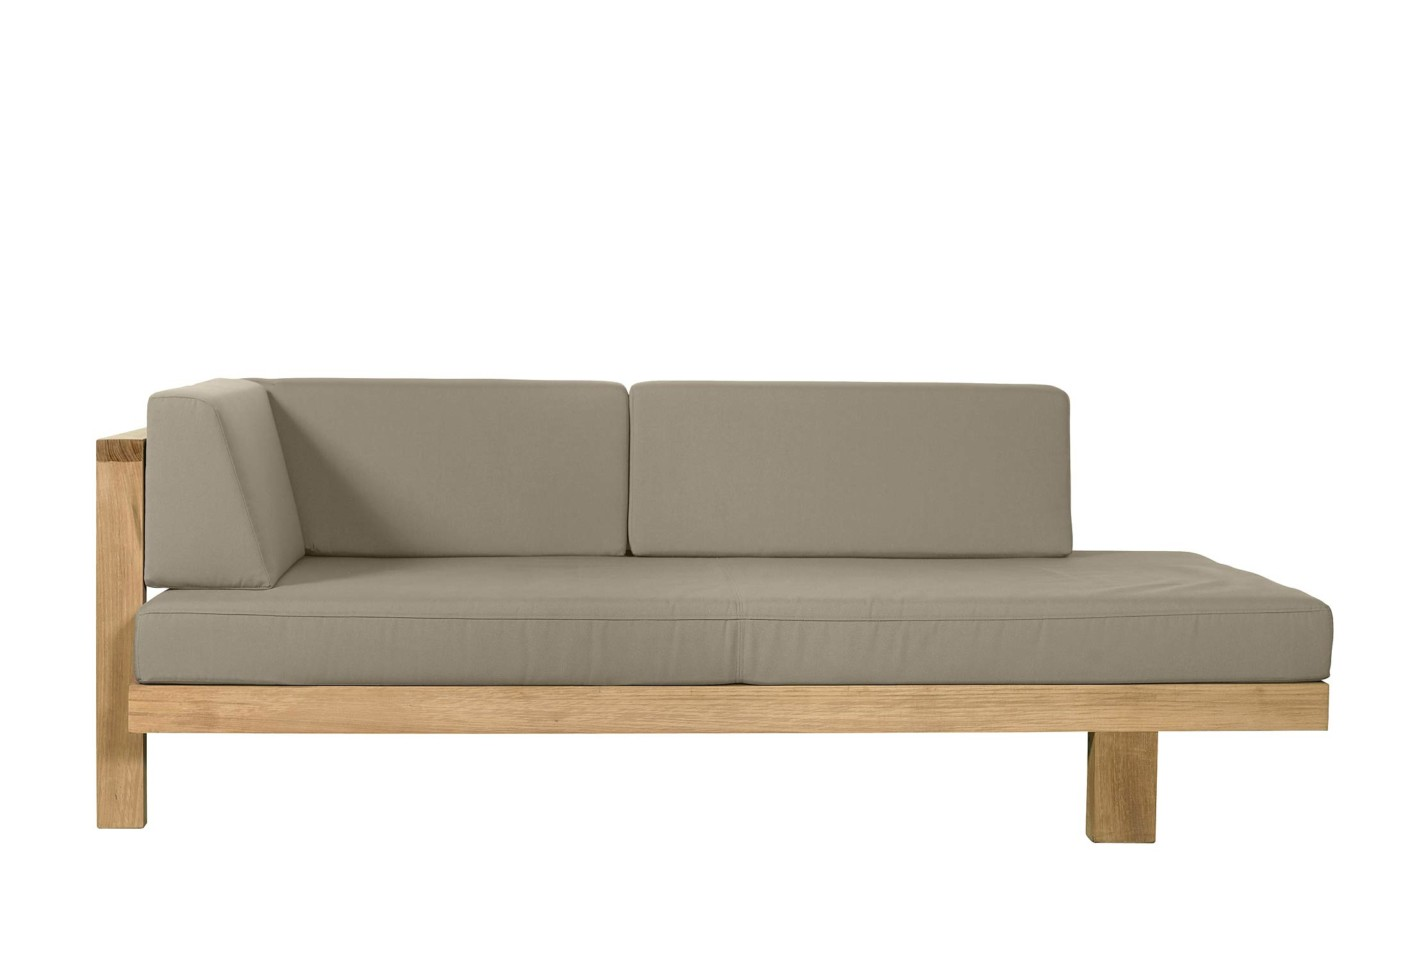 pure sofa right arm by tribù | stylepark - Modulares Outdoor Sofa Island